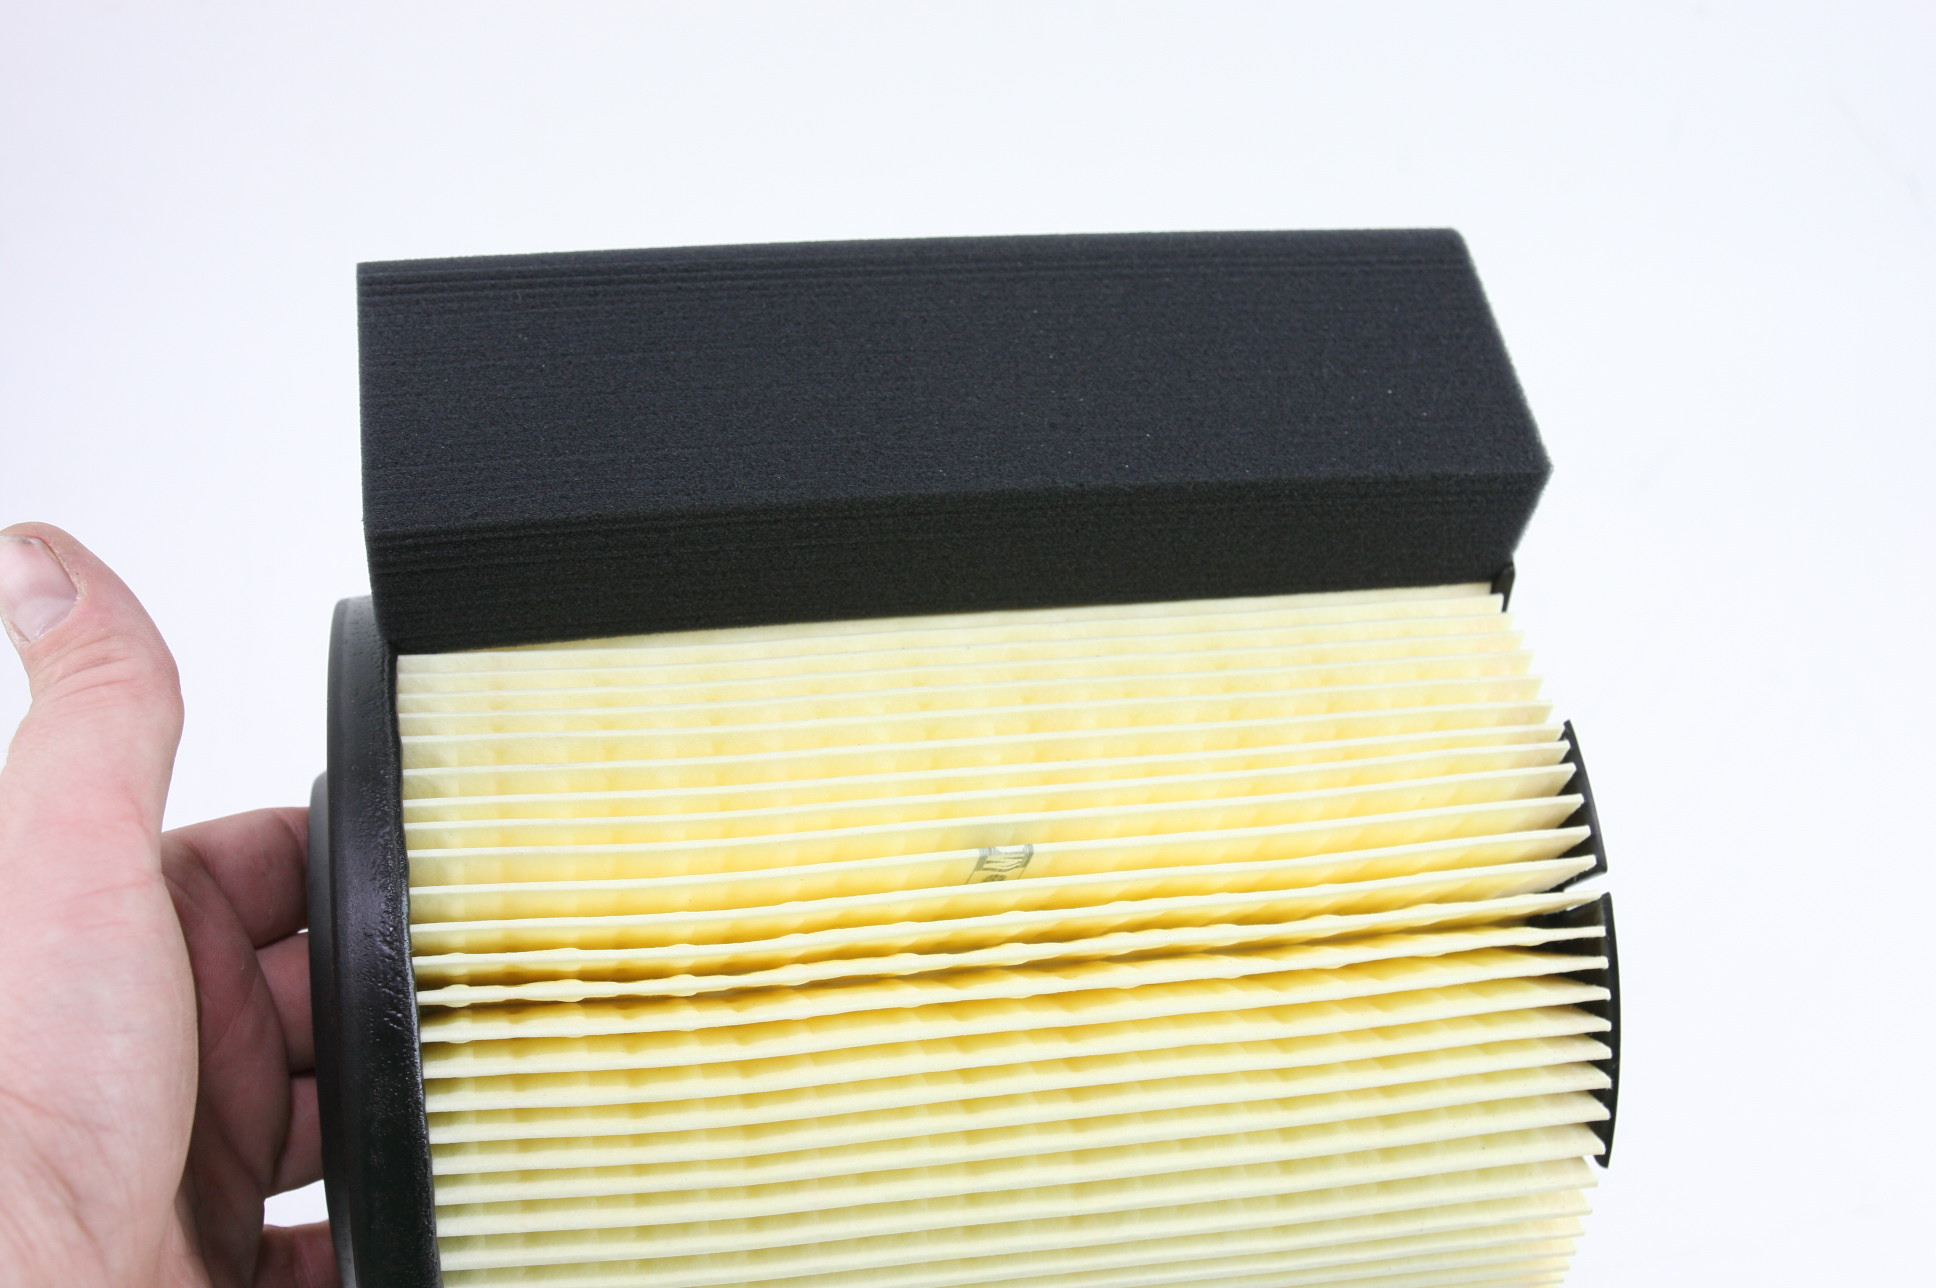 New OEM Motorcraft FA1927 Ford HC3Z9601A Powerstroke Diesel Air Filter Free Ship - image 9